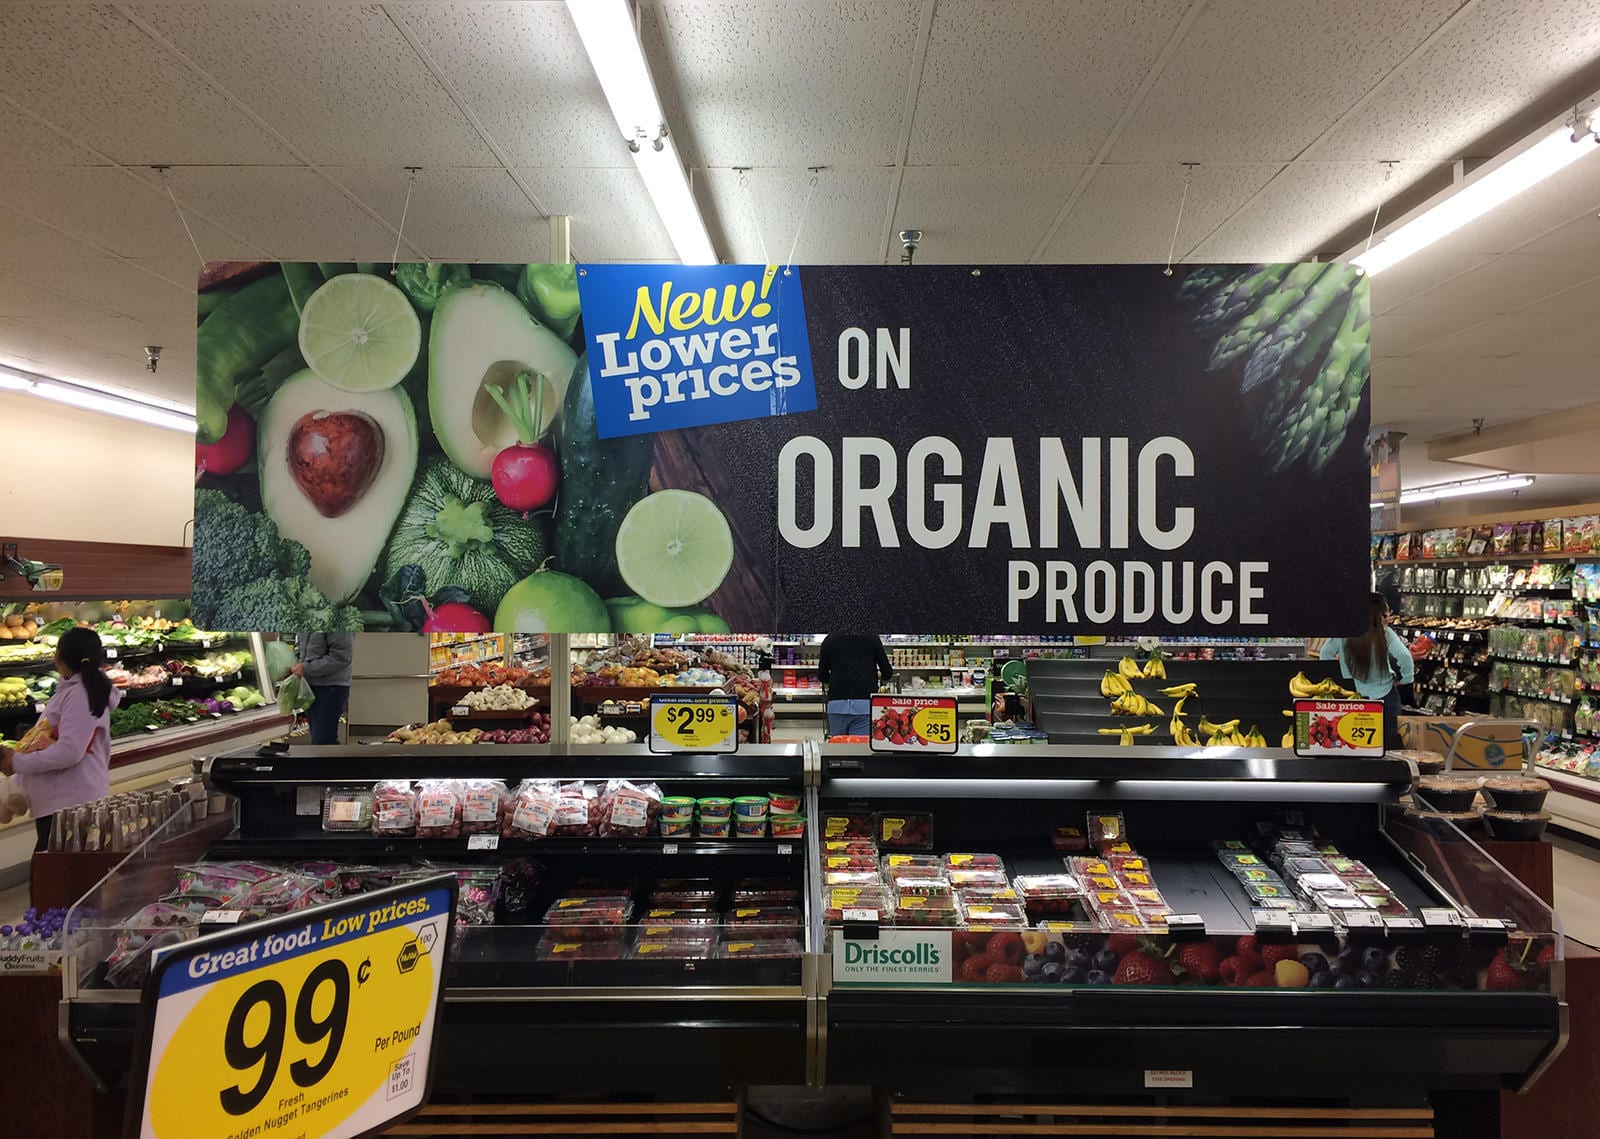 An image of a produce section in a grocery store.